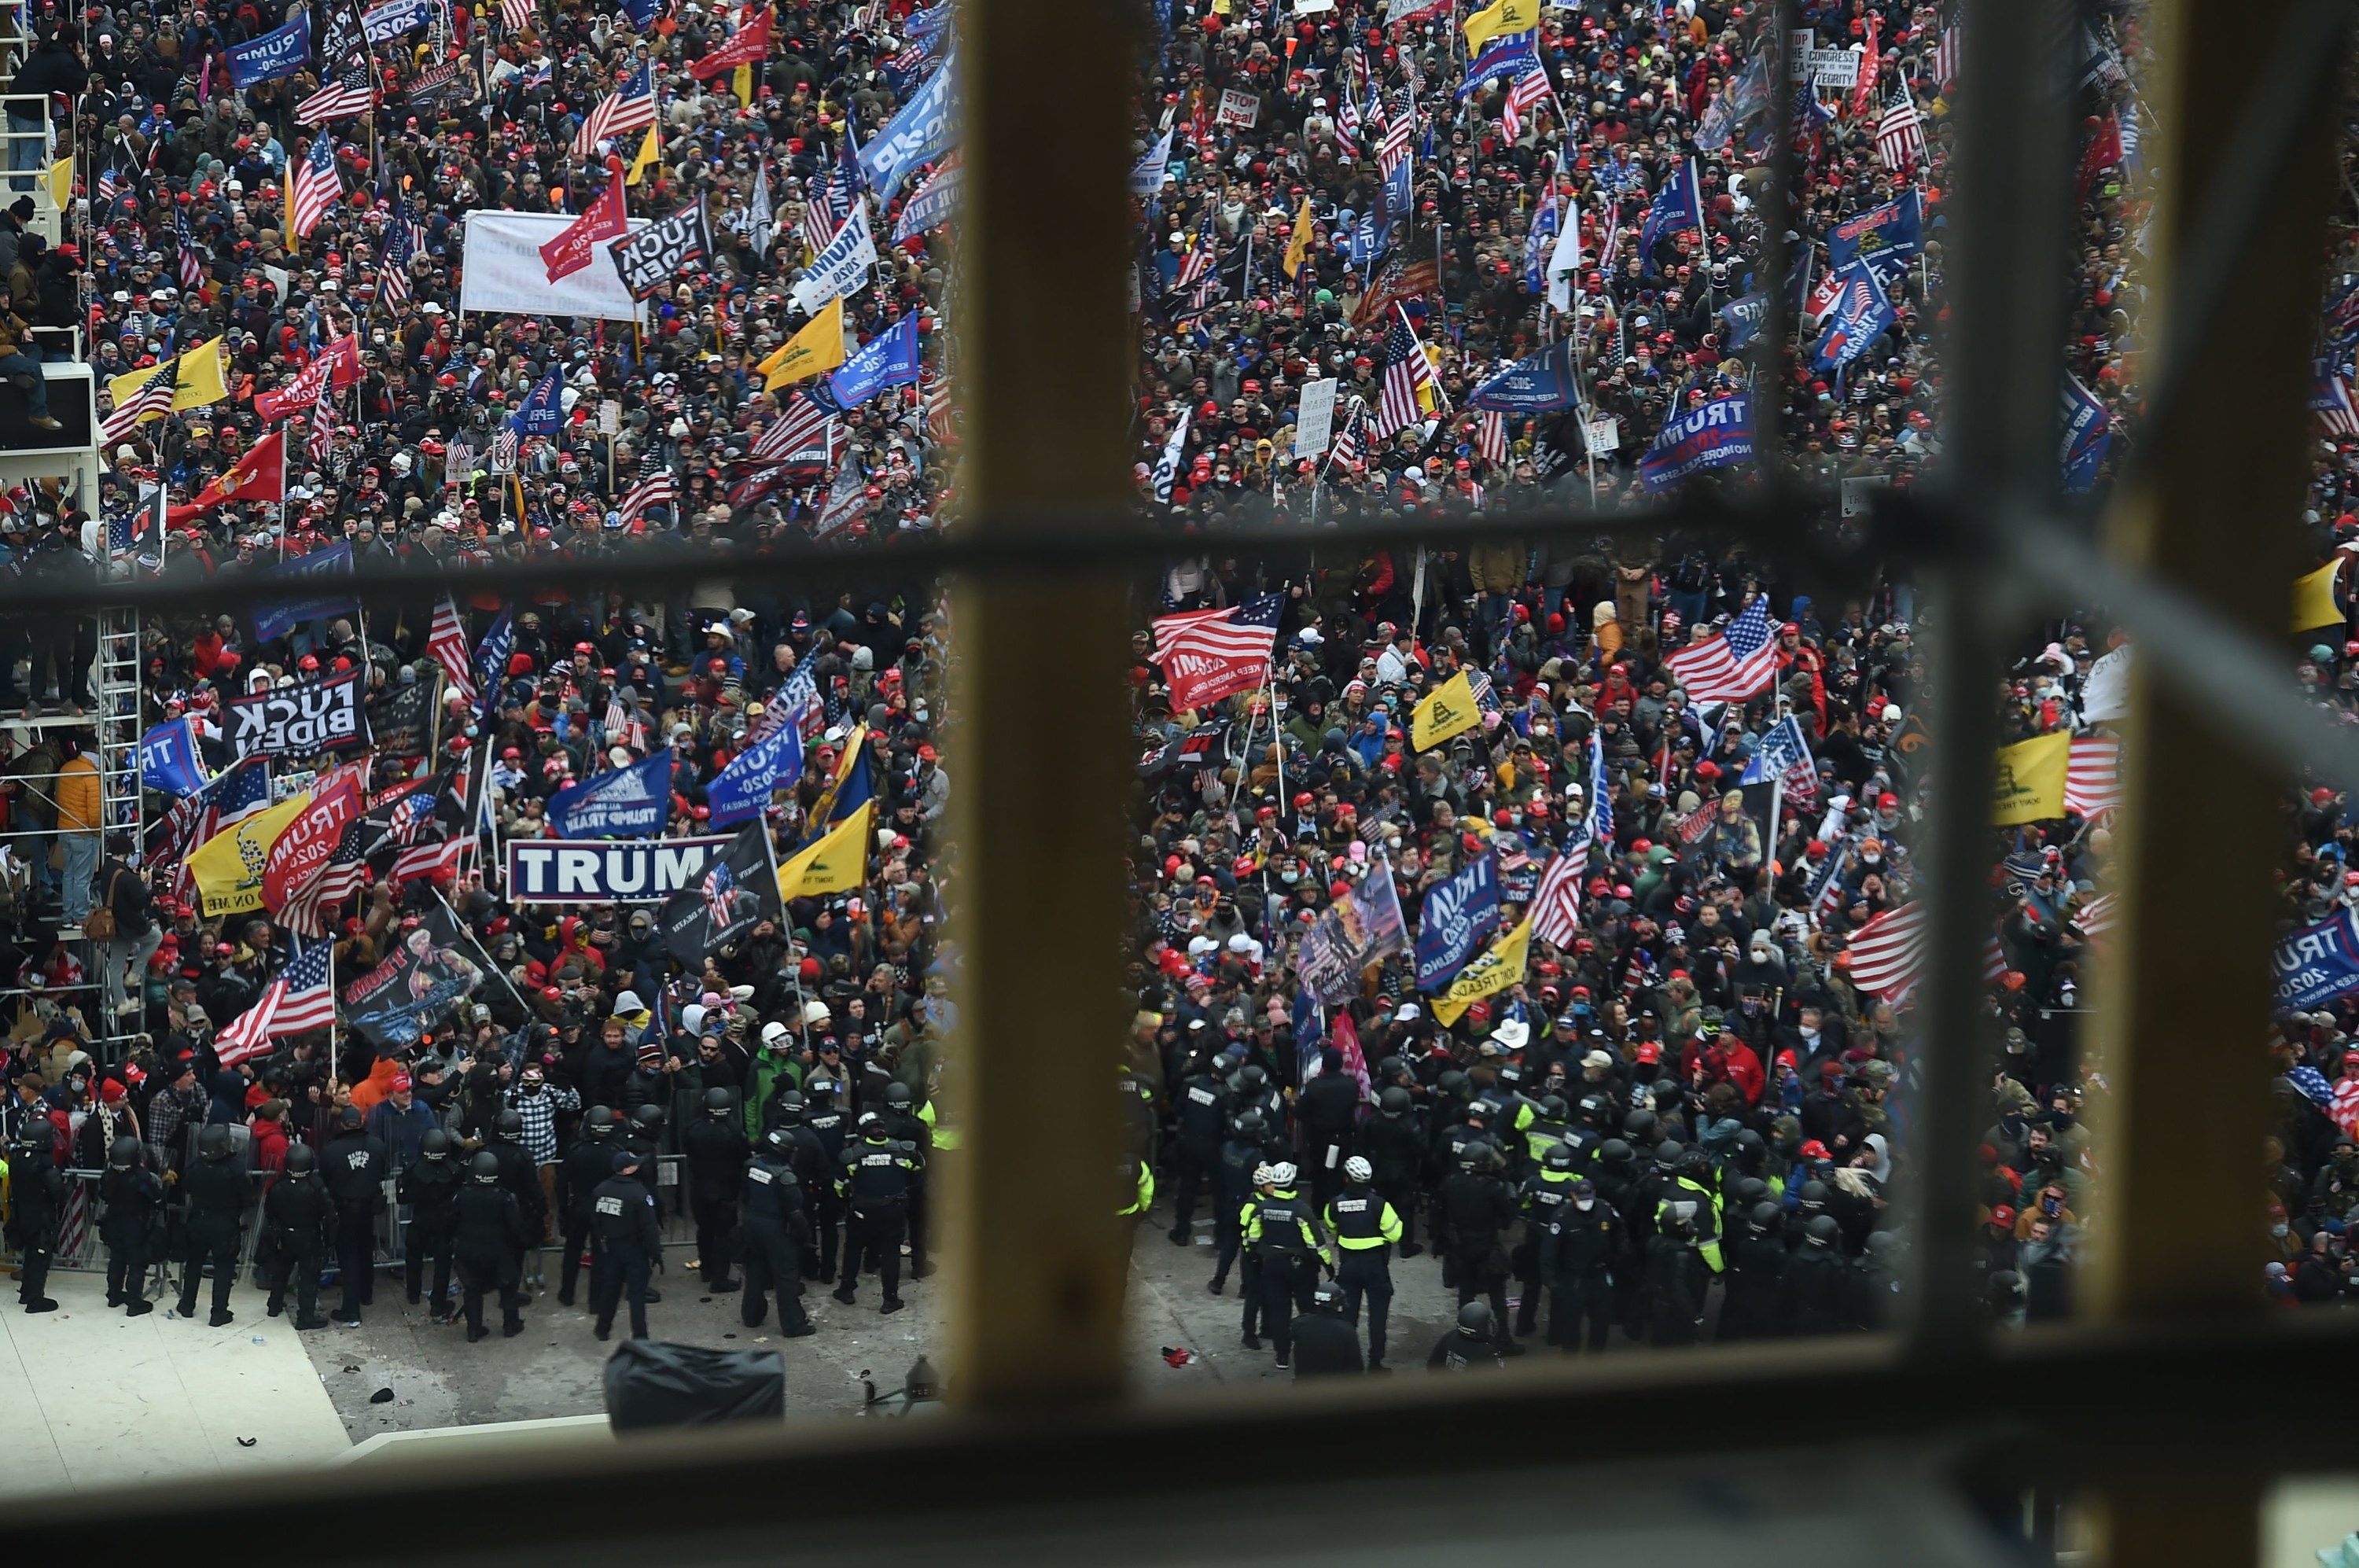 "A large crowd of Trump supporters, waving US flags and flags that say ""Trump 2020"" and ""don't tread on me"" stand behind a line of police officers, as seen through out-of-focus scaffolding in the foreground"